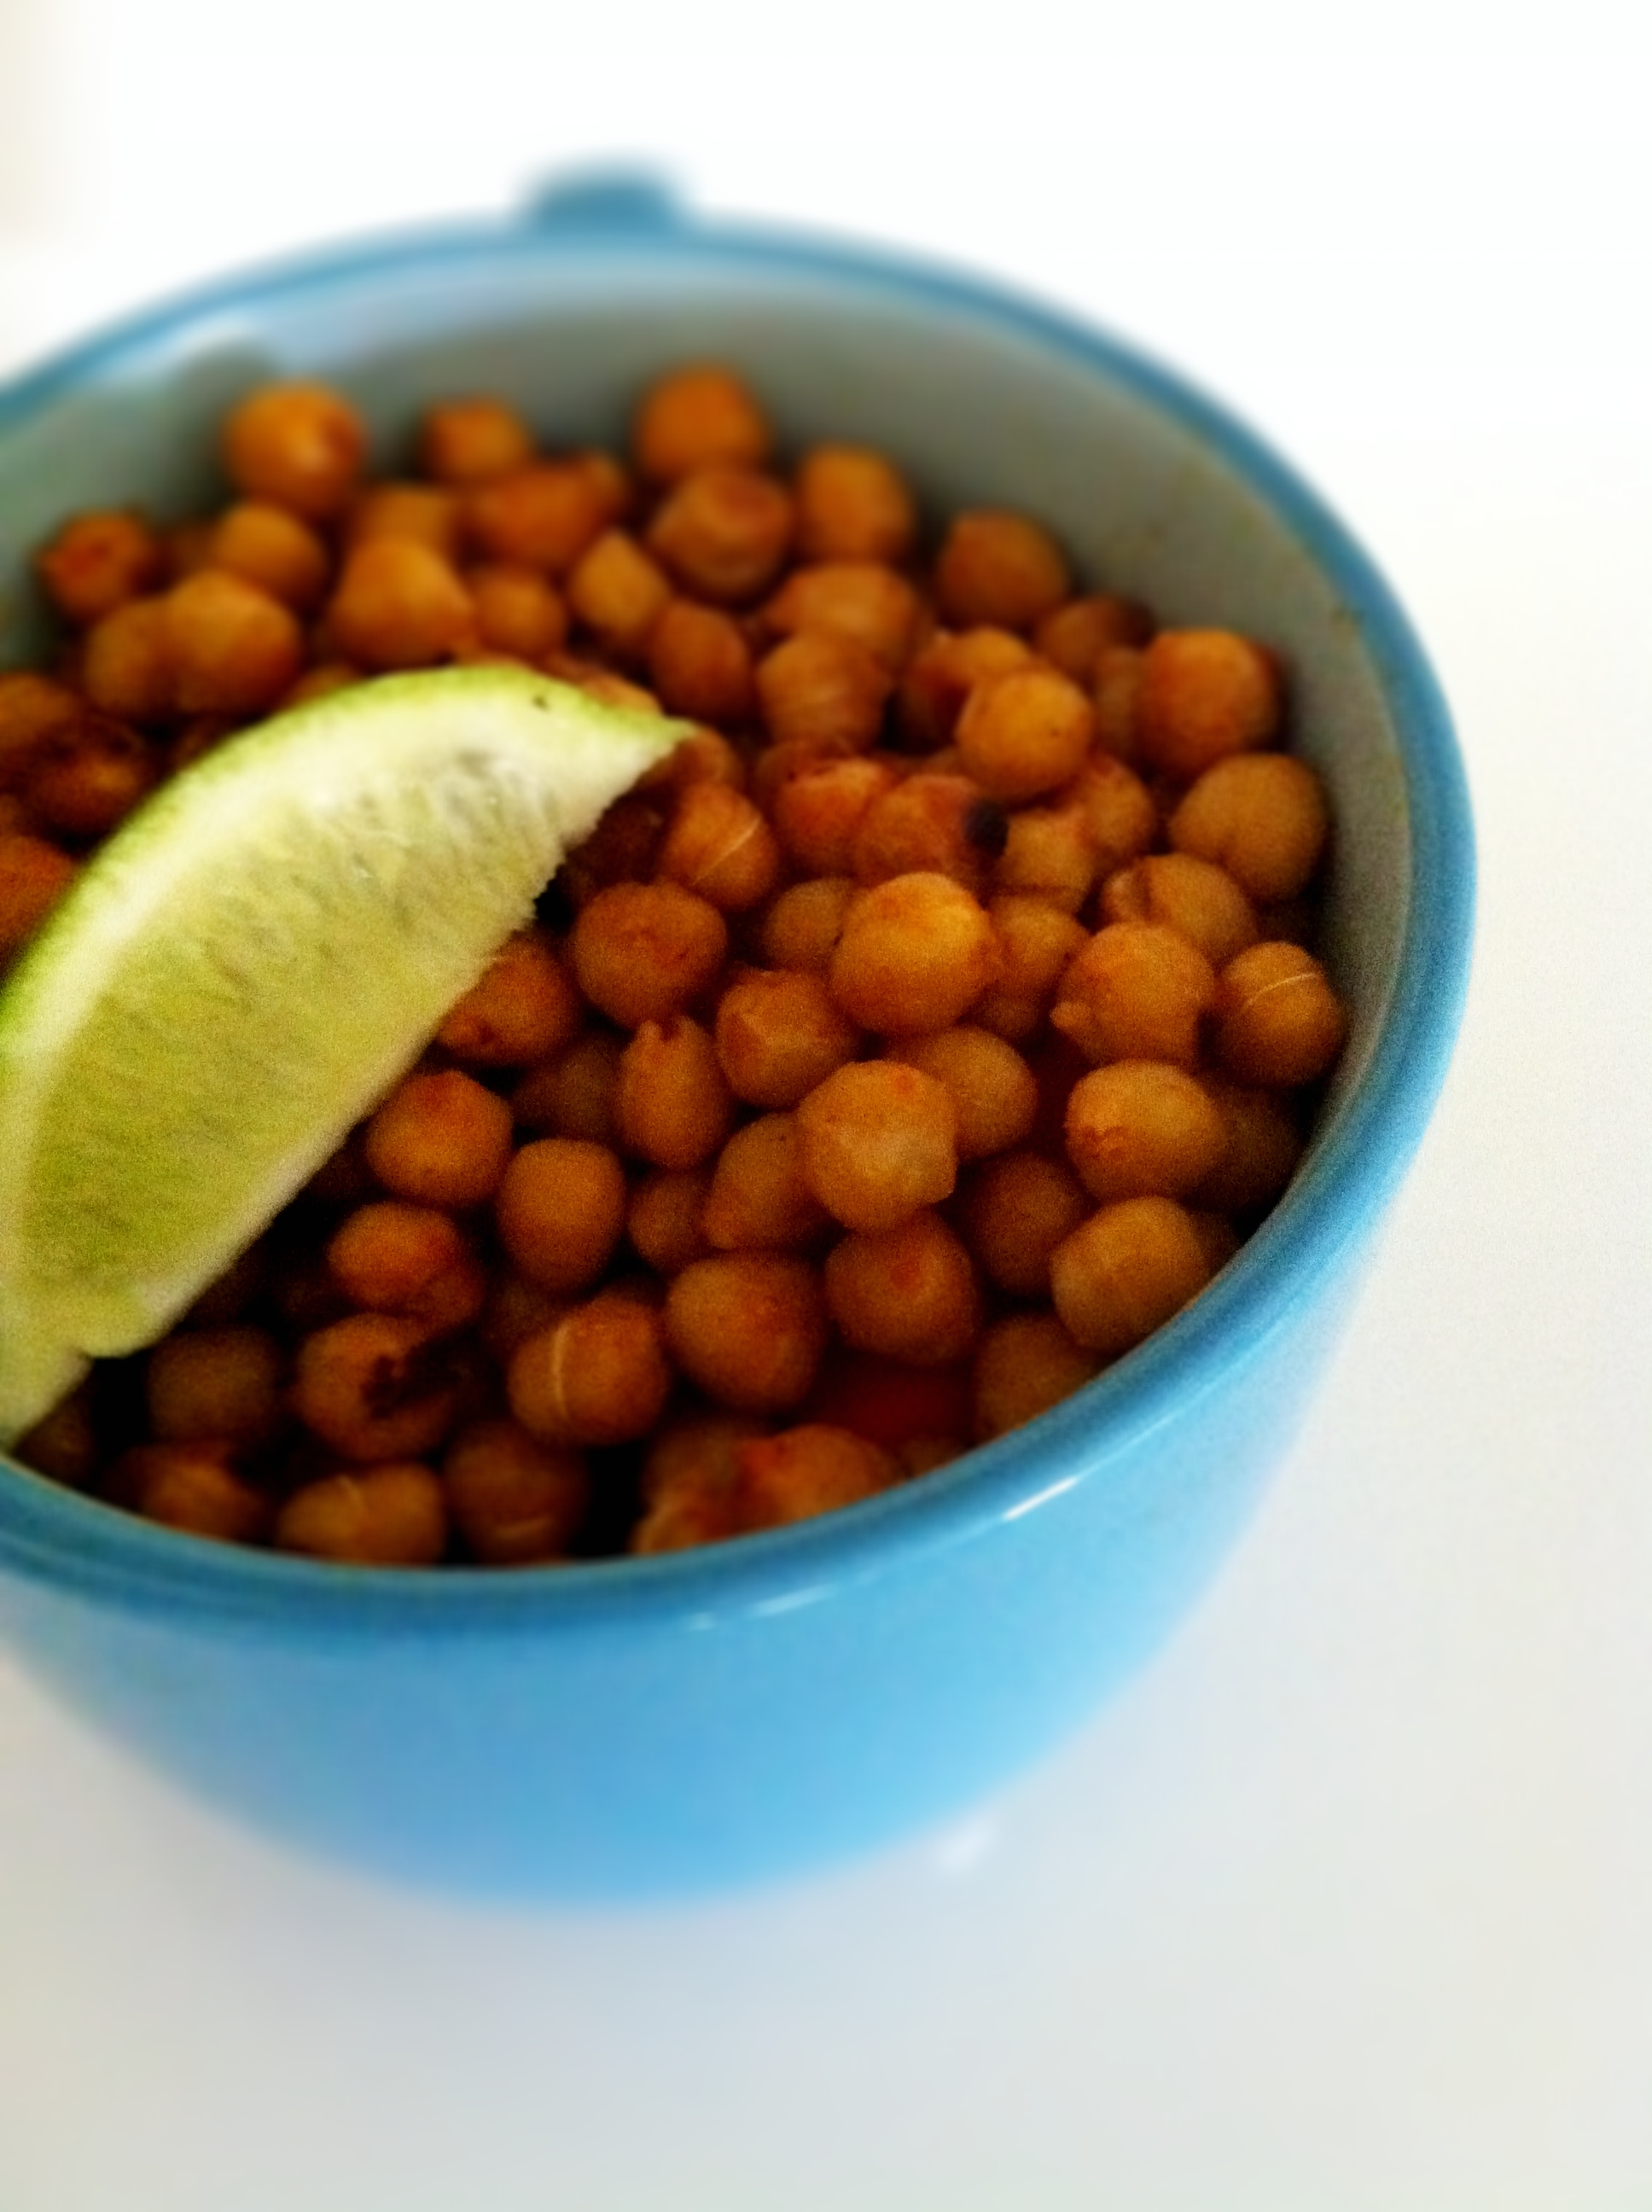 Candied Roasted Chickpeas (plus 8 more chickpea recipes)